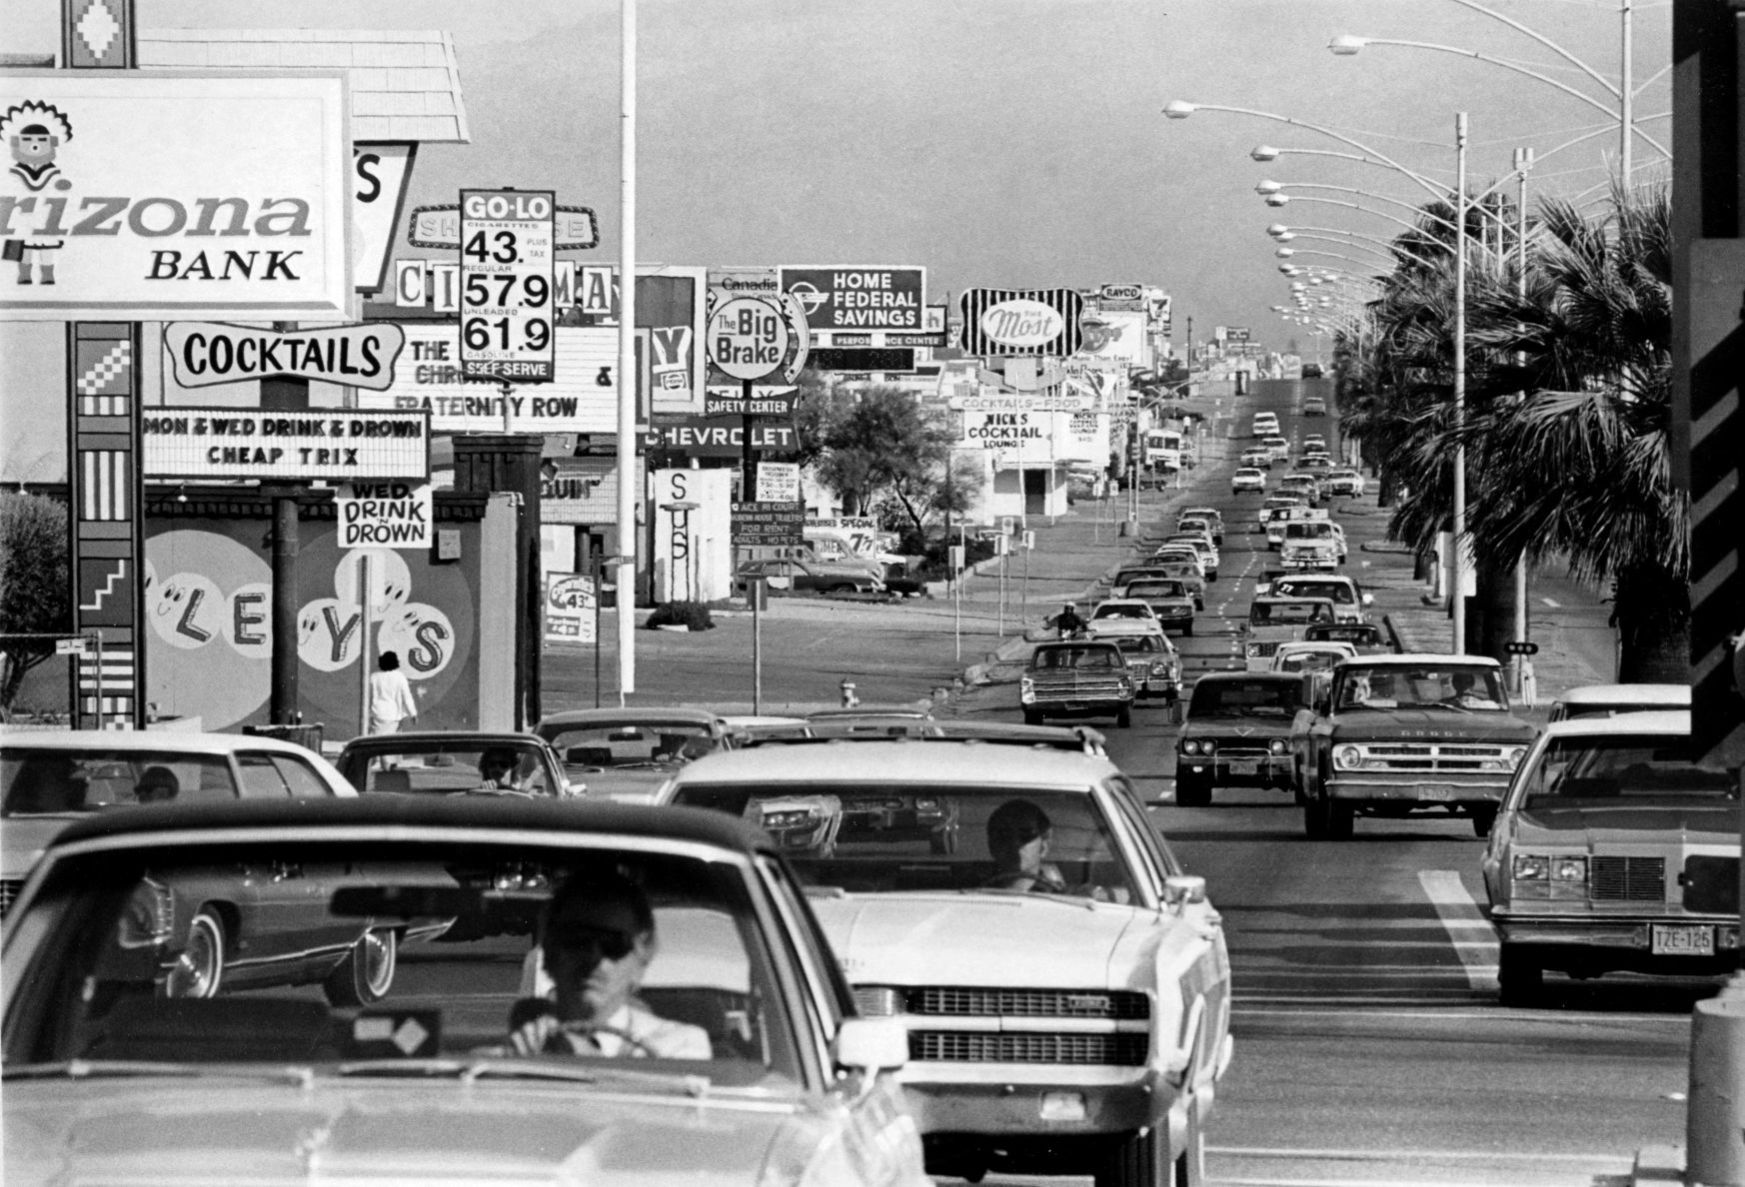 Speedway's label as 'ugliest street in the US' can be traced back to Tucson's 1962 mayor